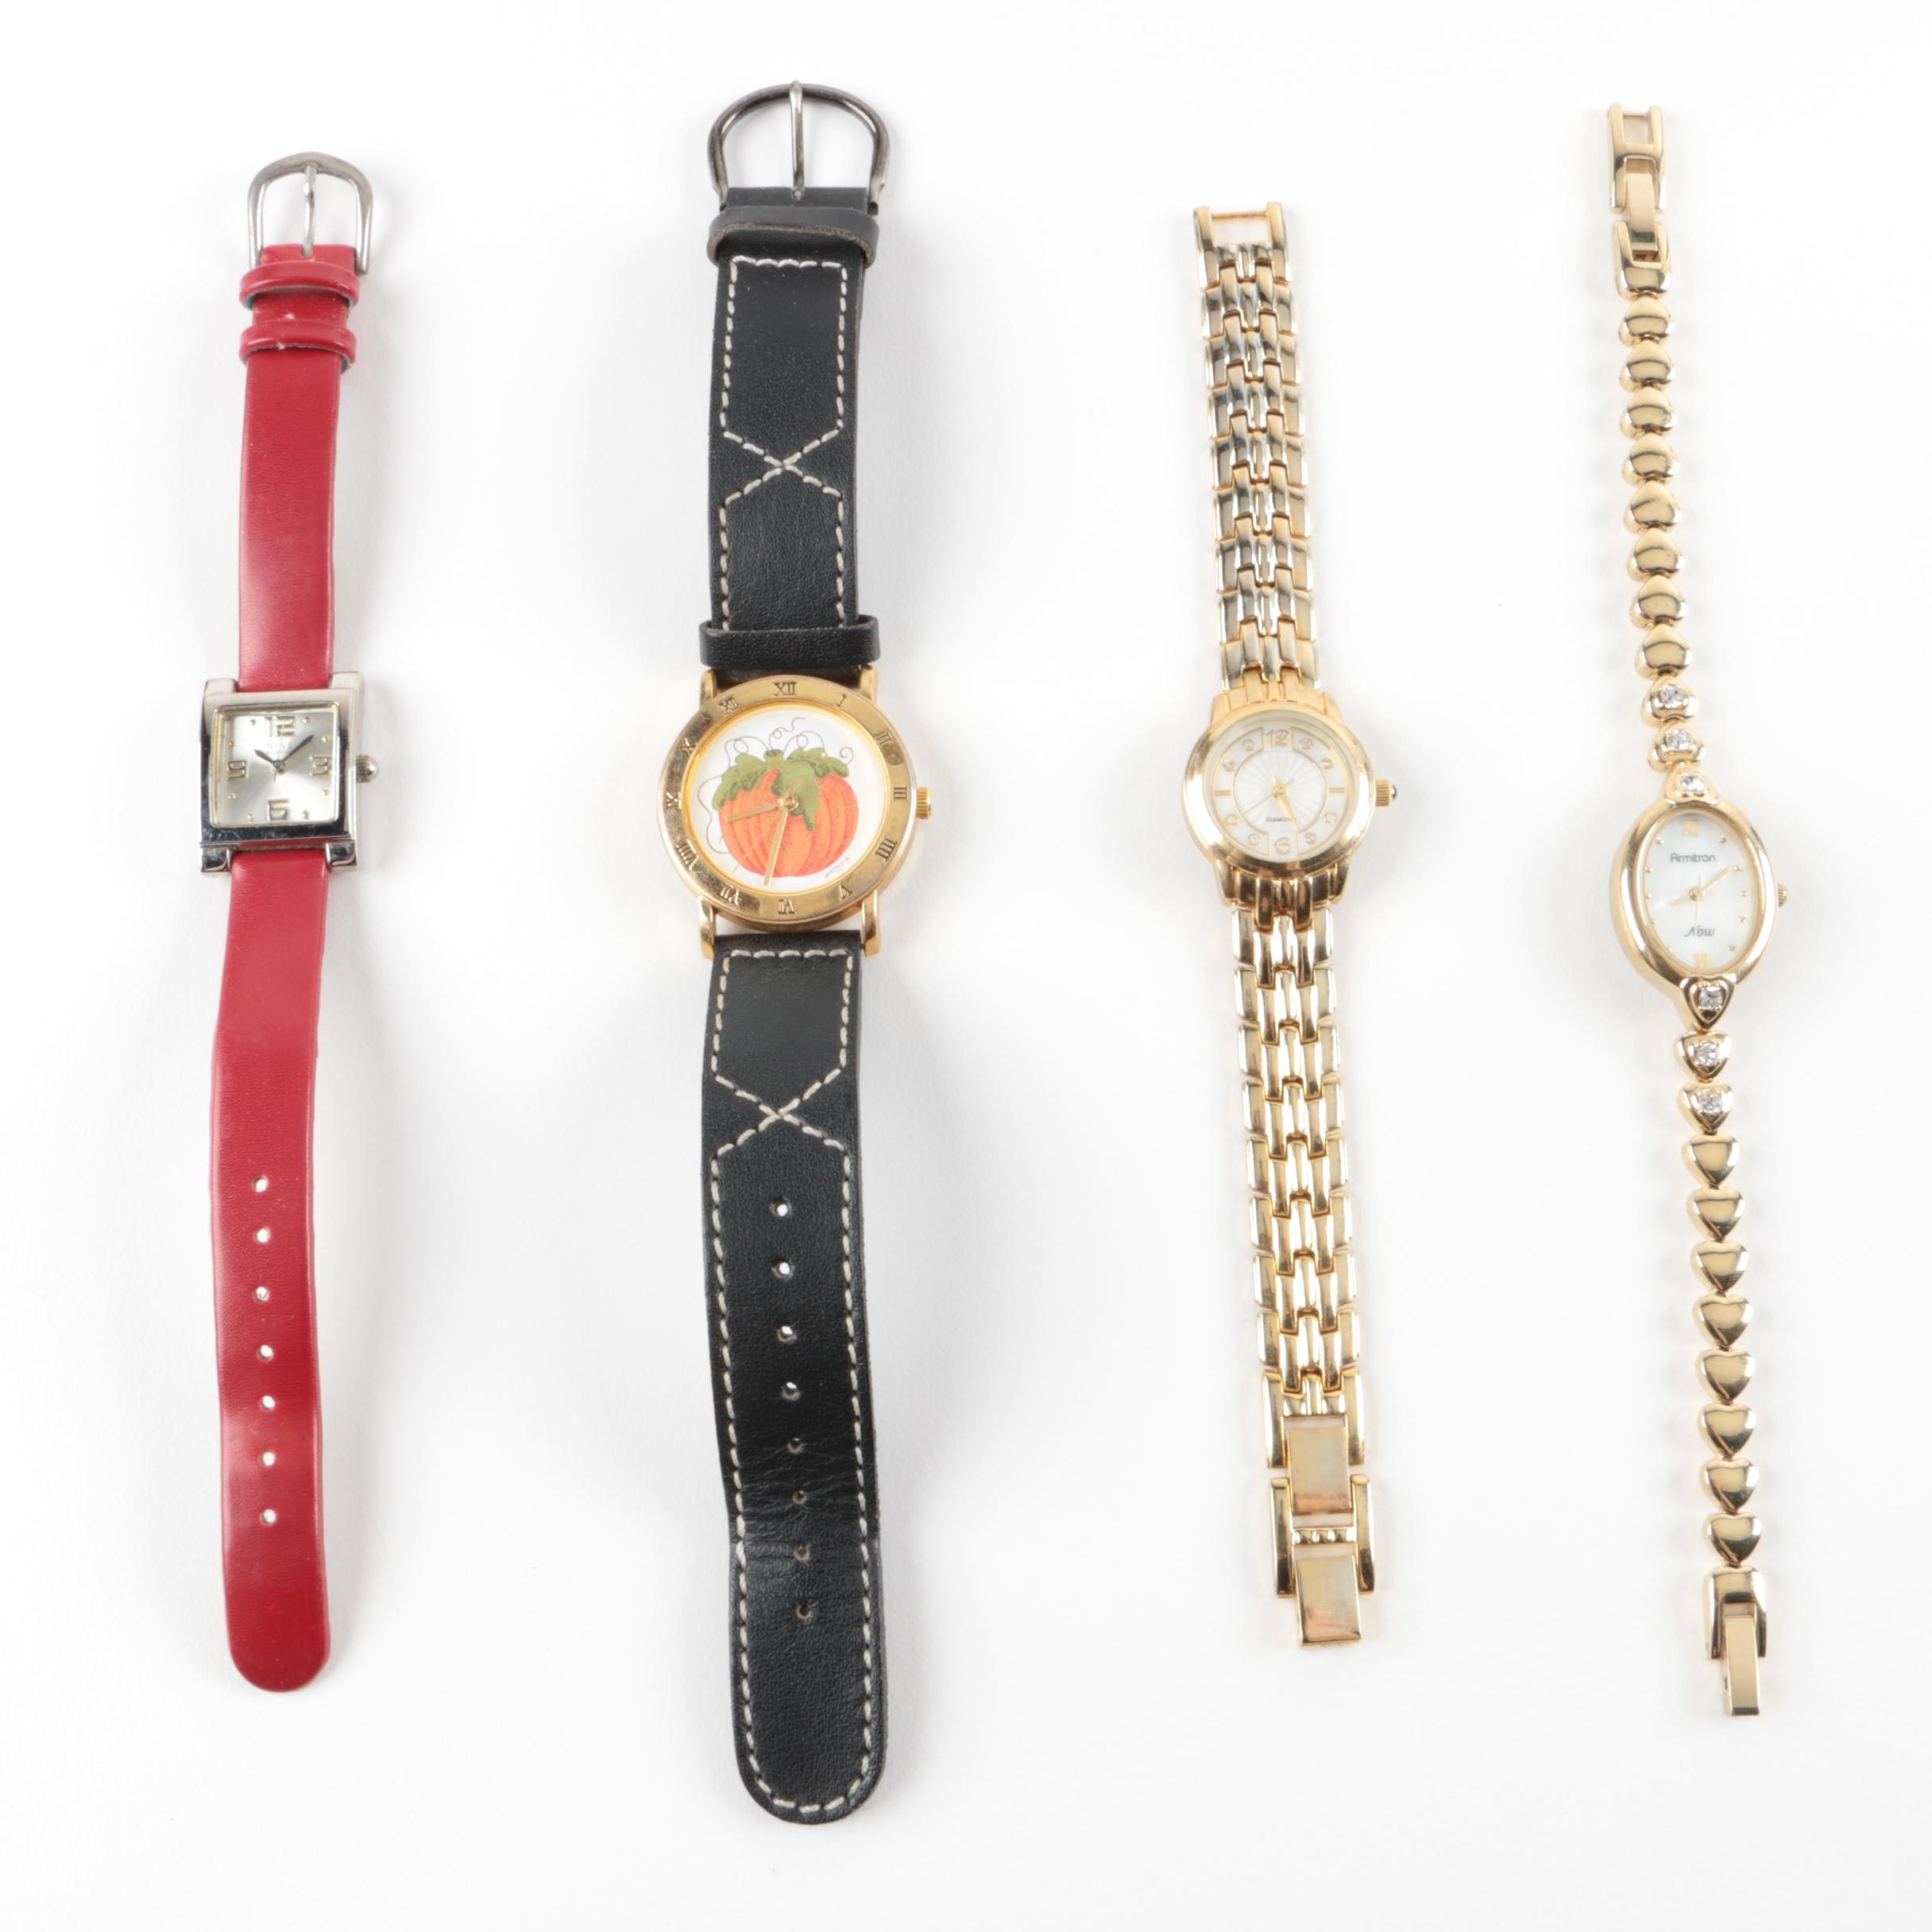 Grouping of Costume Watches with Accents Including Diamonds